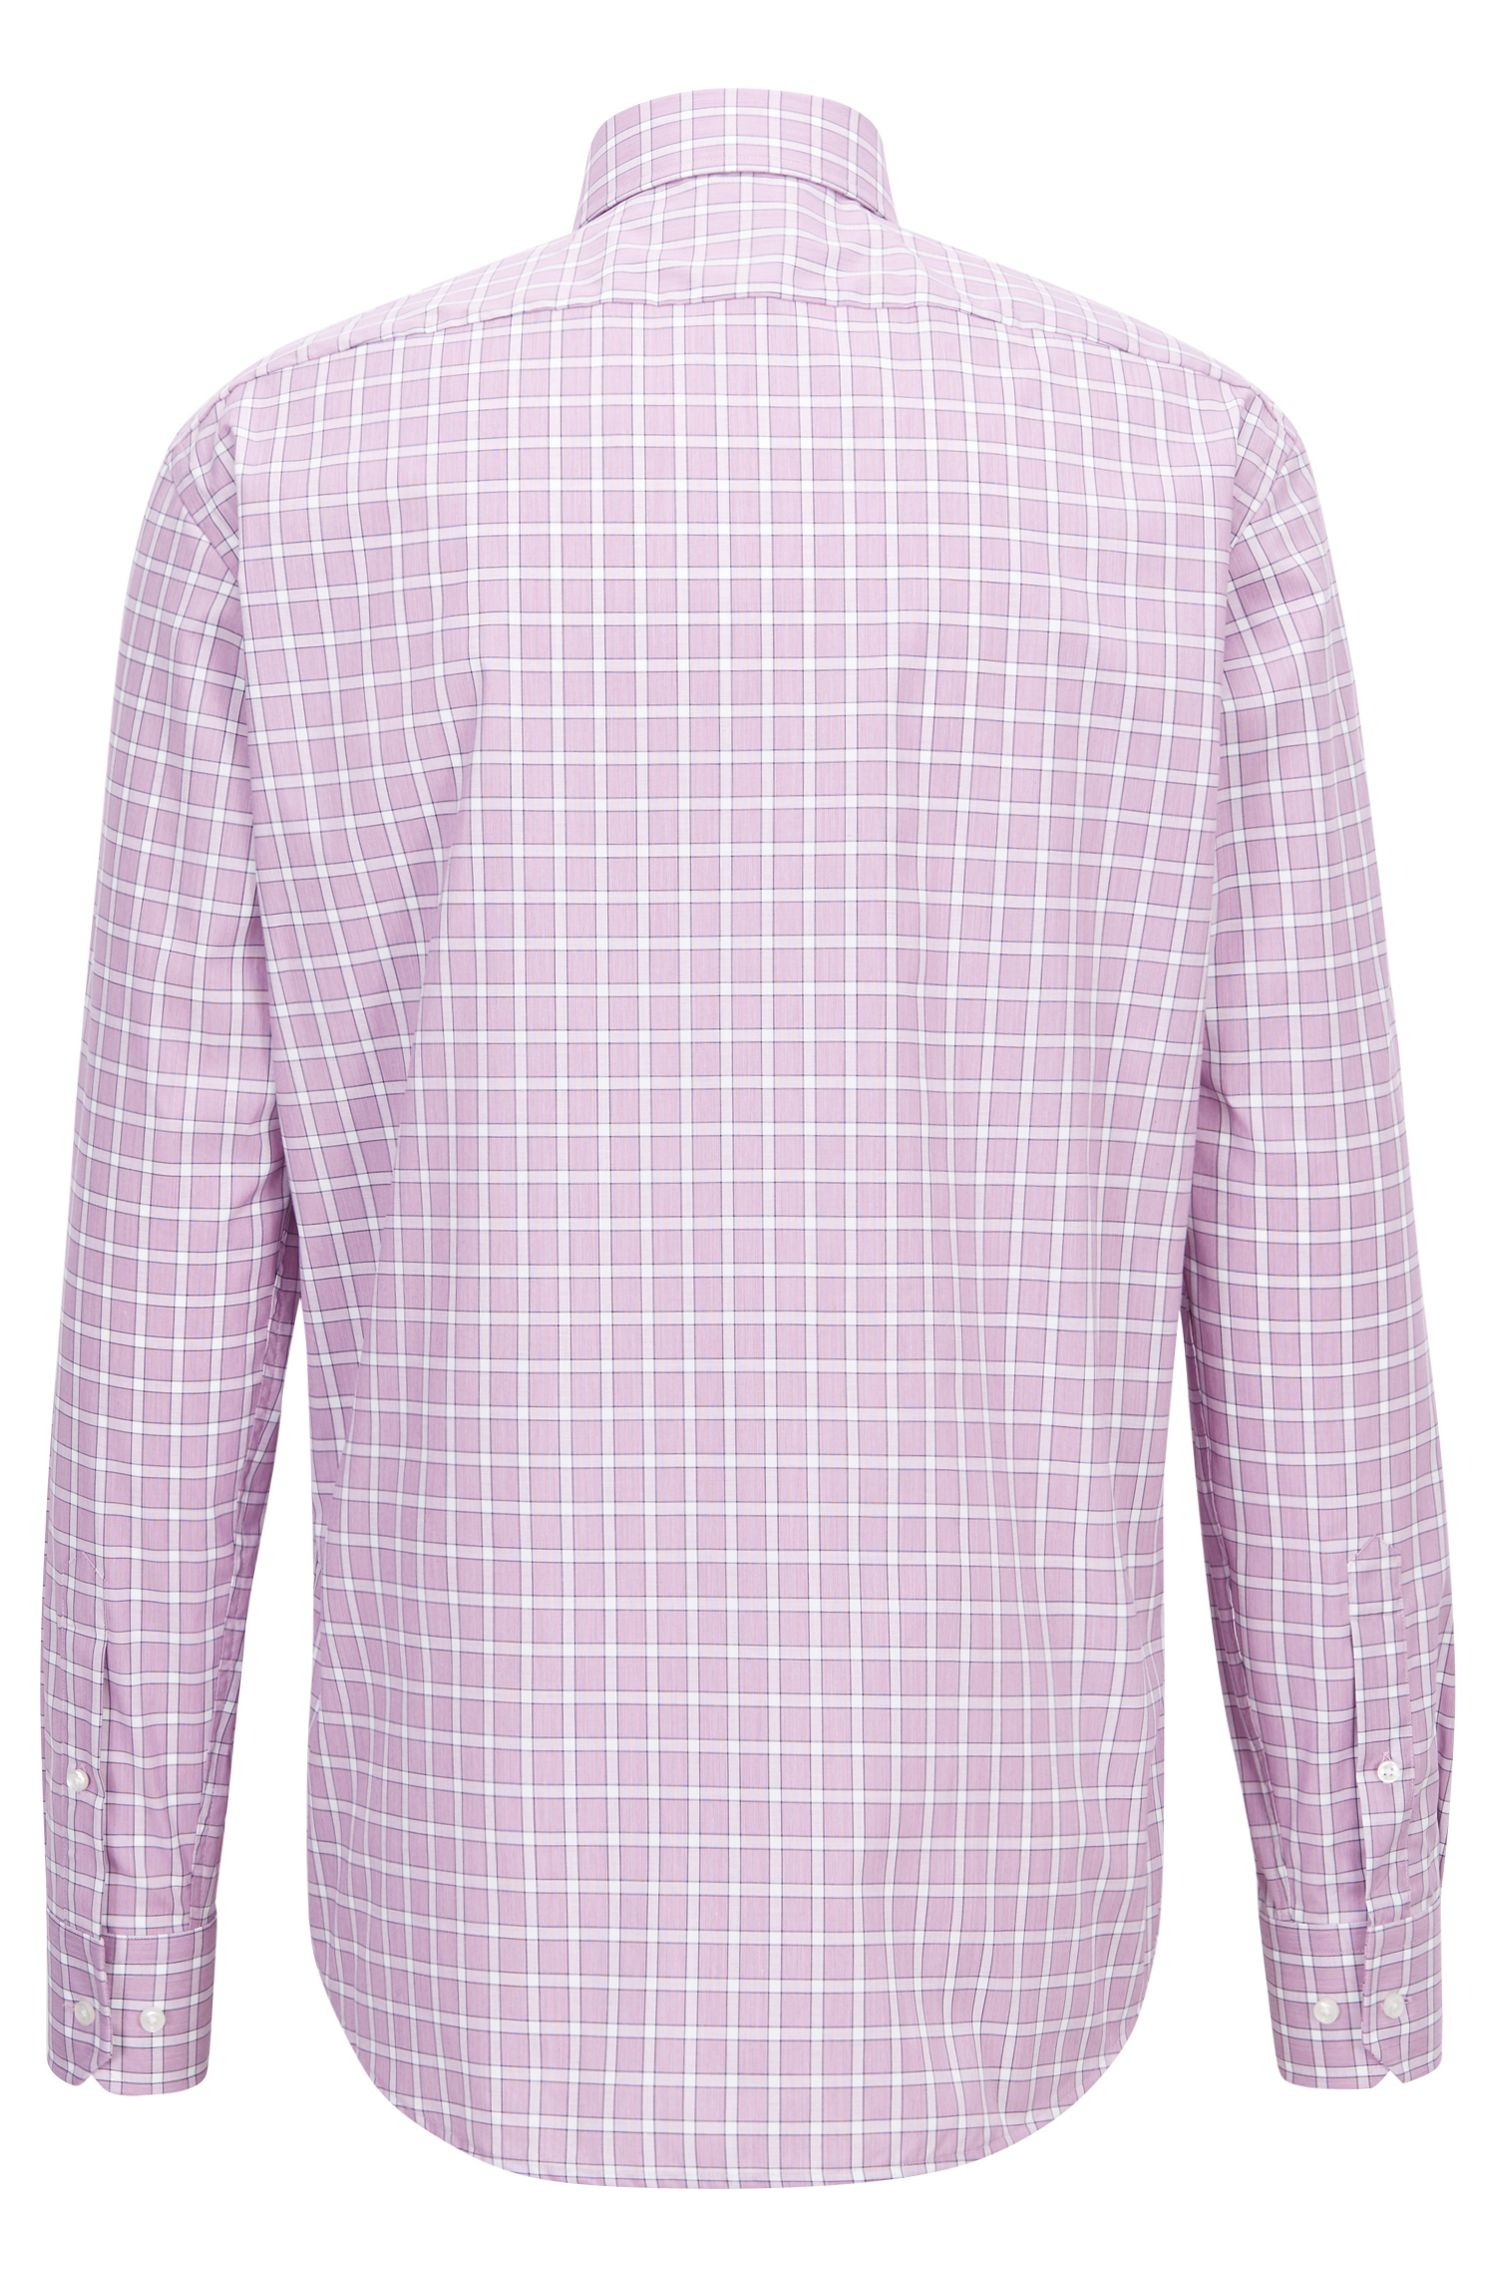 Camicia regular fit facile da stirare in cotone a quadri Vichy, Rosa scuro